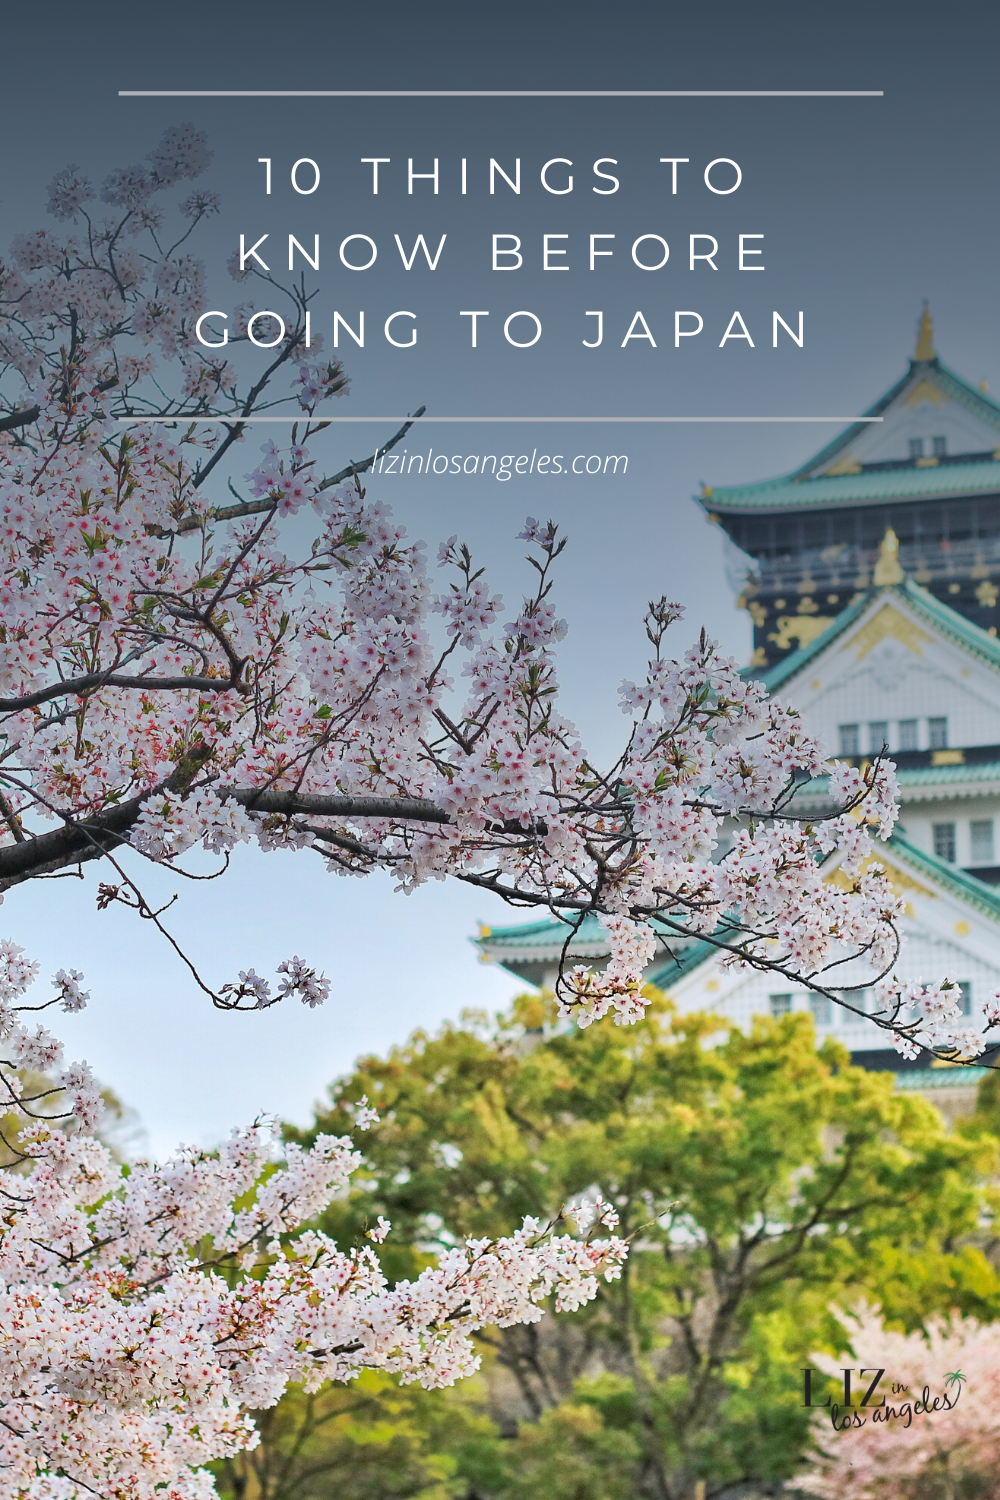 Things to Know Before Going to Japan, a blog post by Liz in Los Angeles, Los Angeles Lifestyle Blogger: an image of sakura tree and shrine